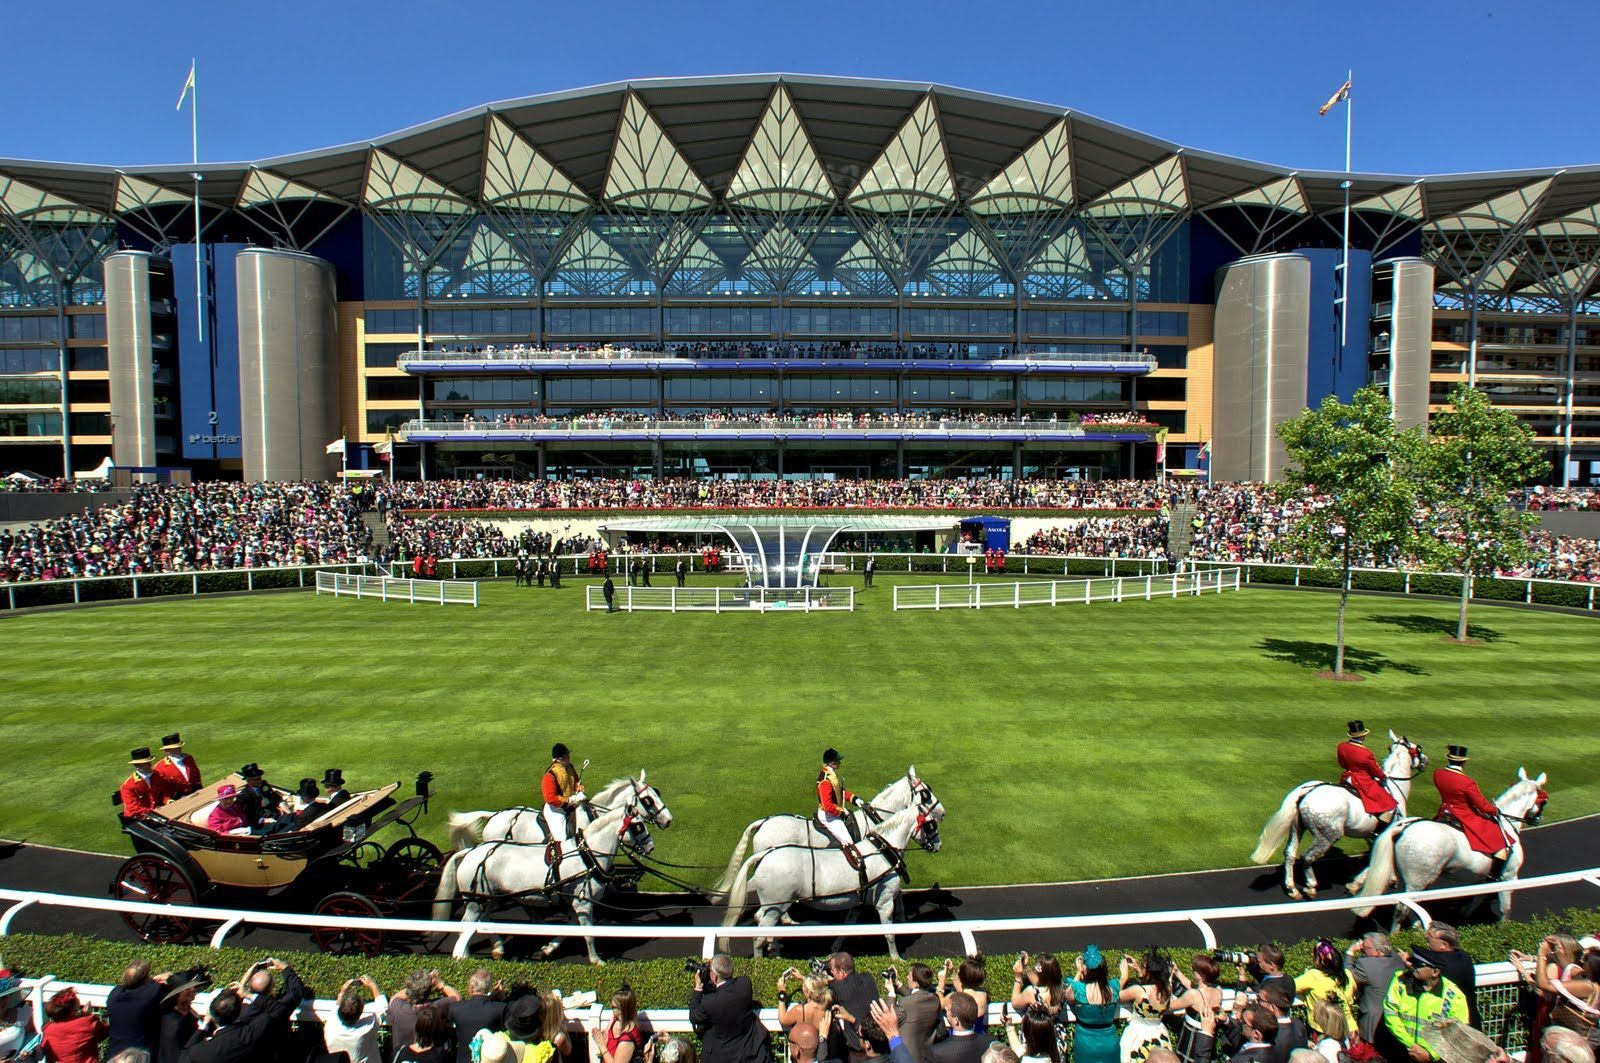 Win two tickets to the first day of the Royal Ascot 2017 in the Queen Anne enclosure